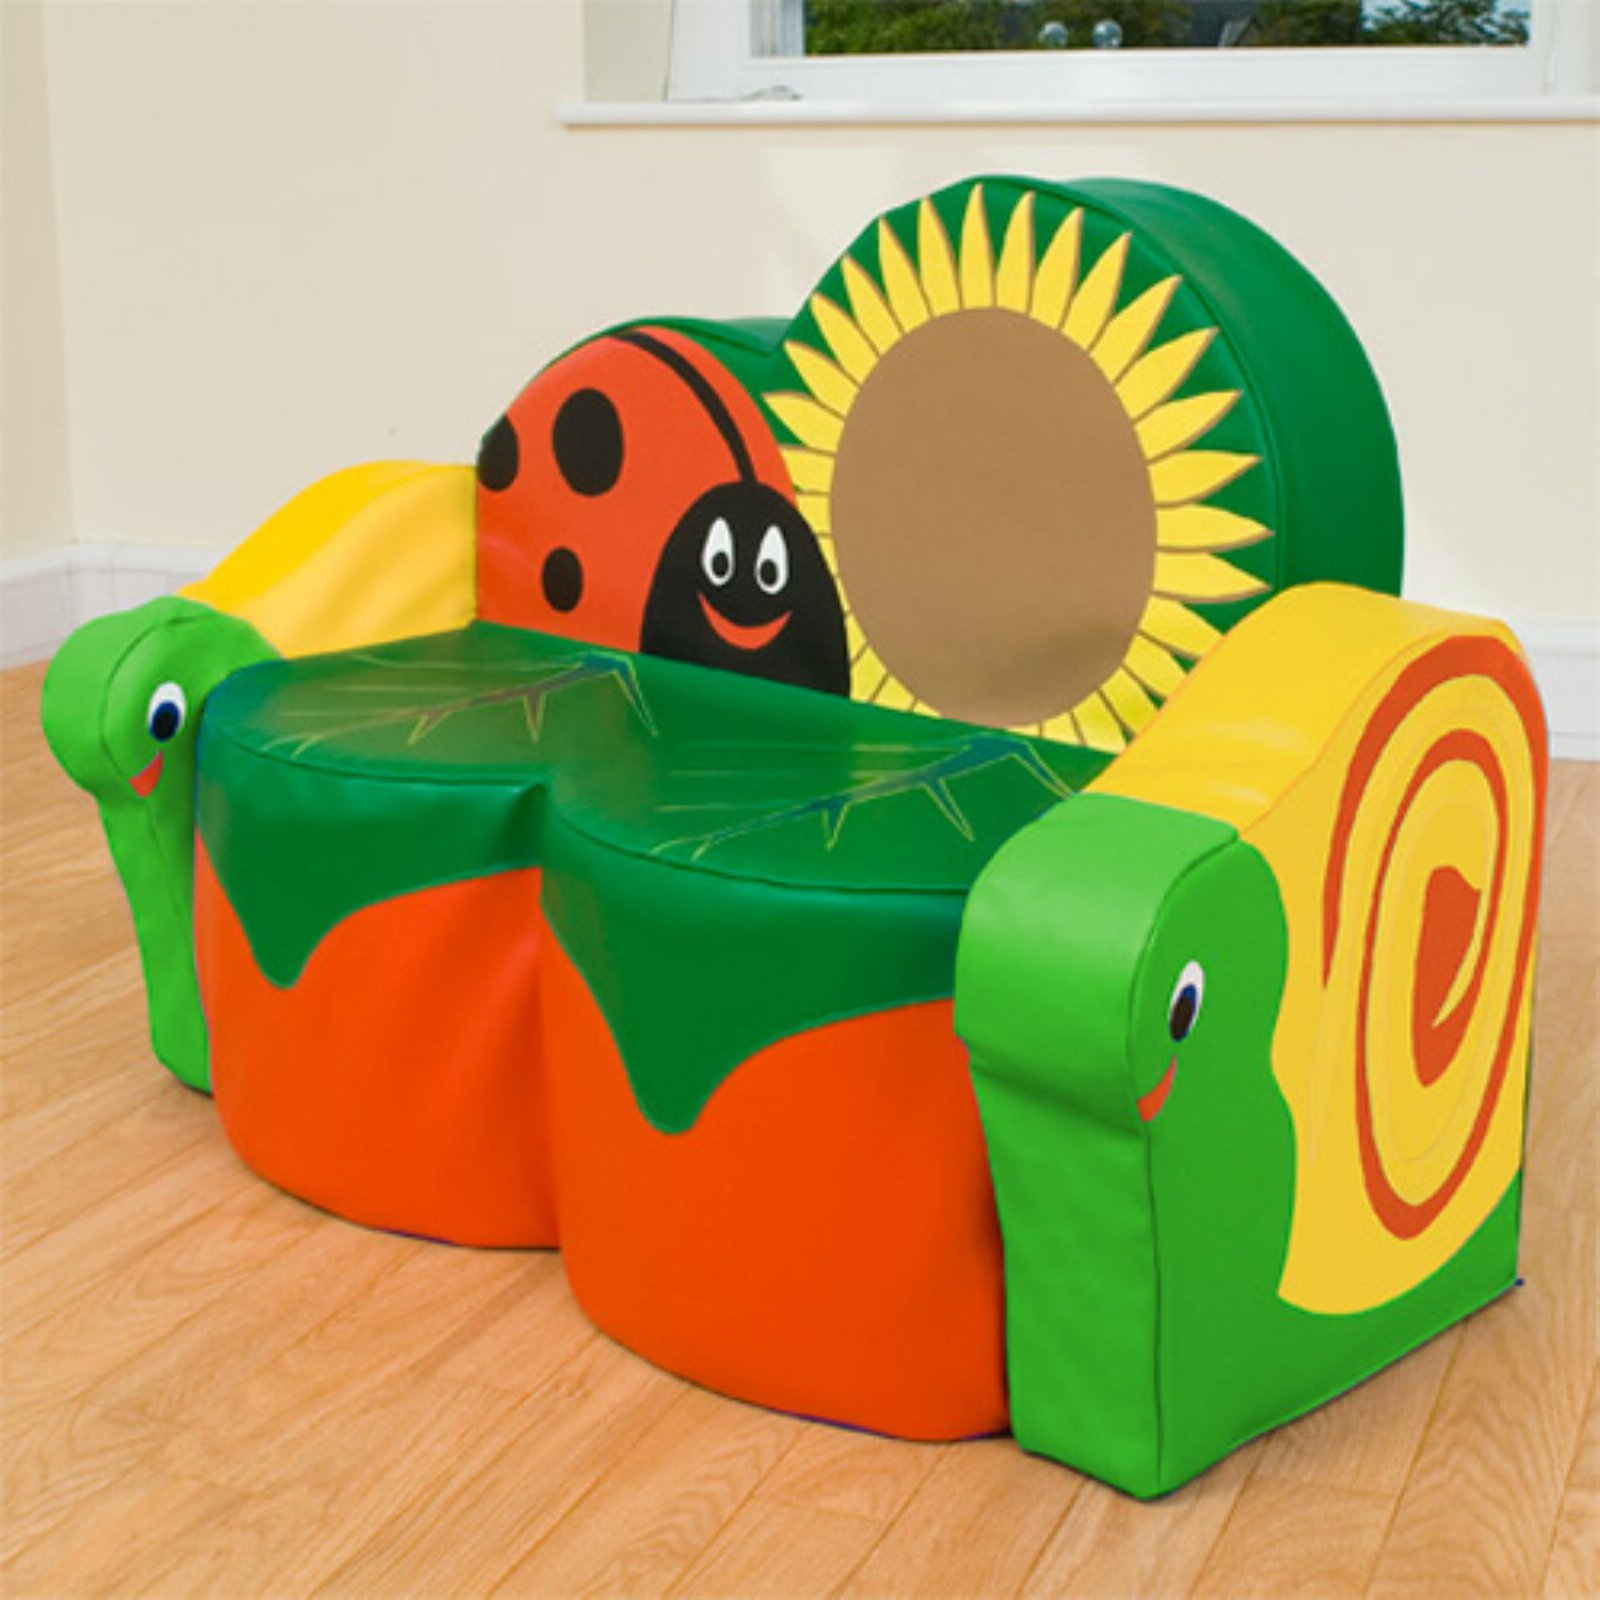 Kalokids Back to Nature Snail Sofa with Arms